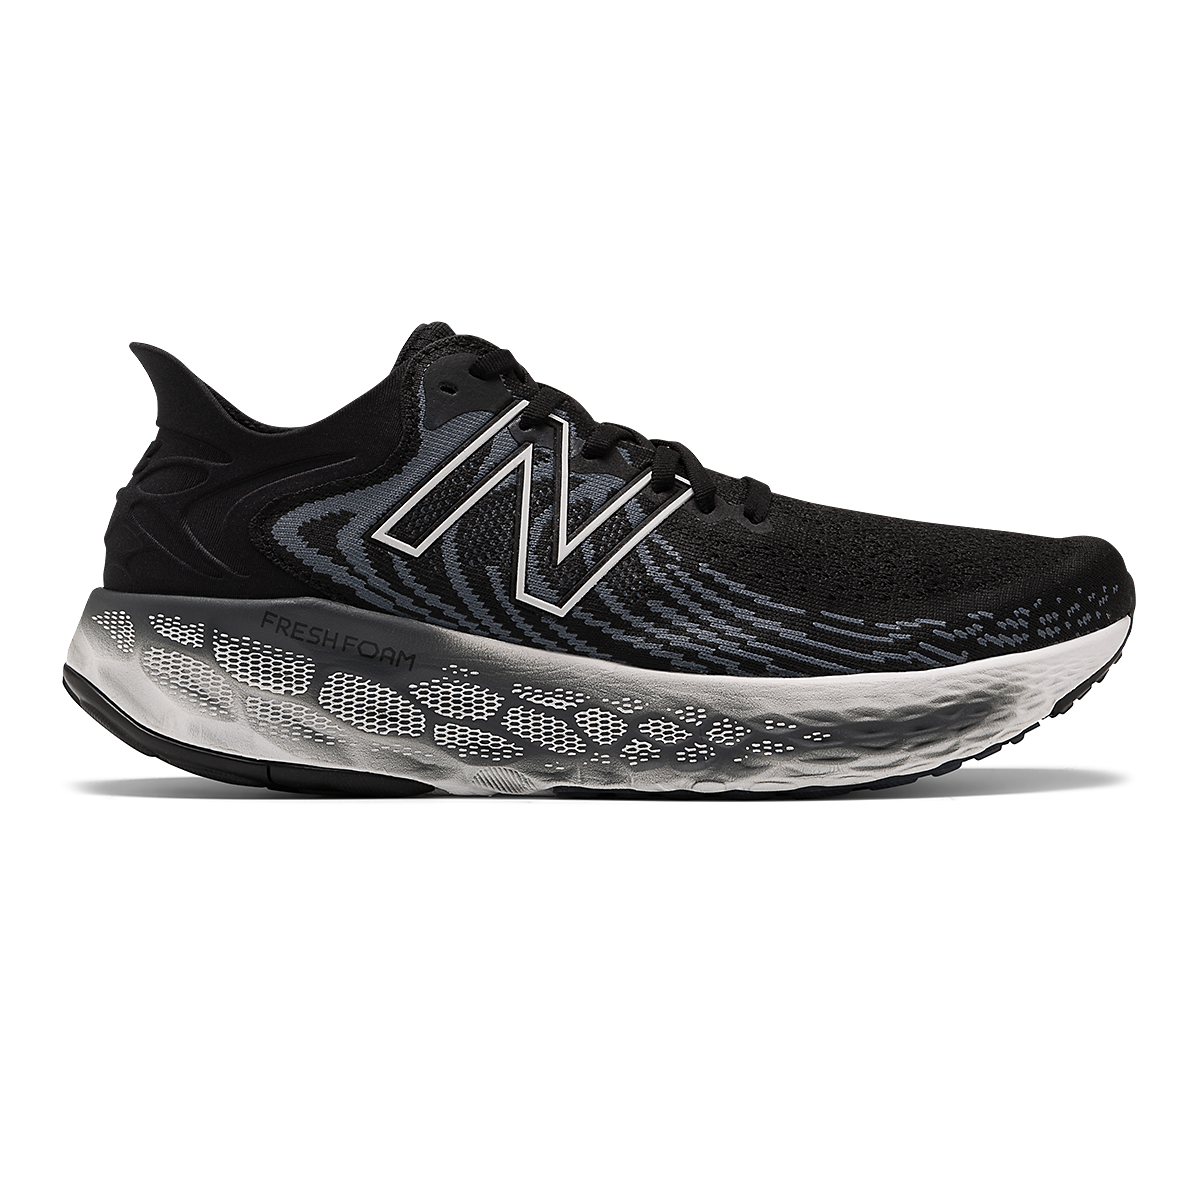 Men's New Balance 1080v11 Running Shoe, , large, image 1